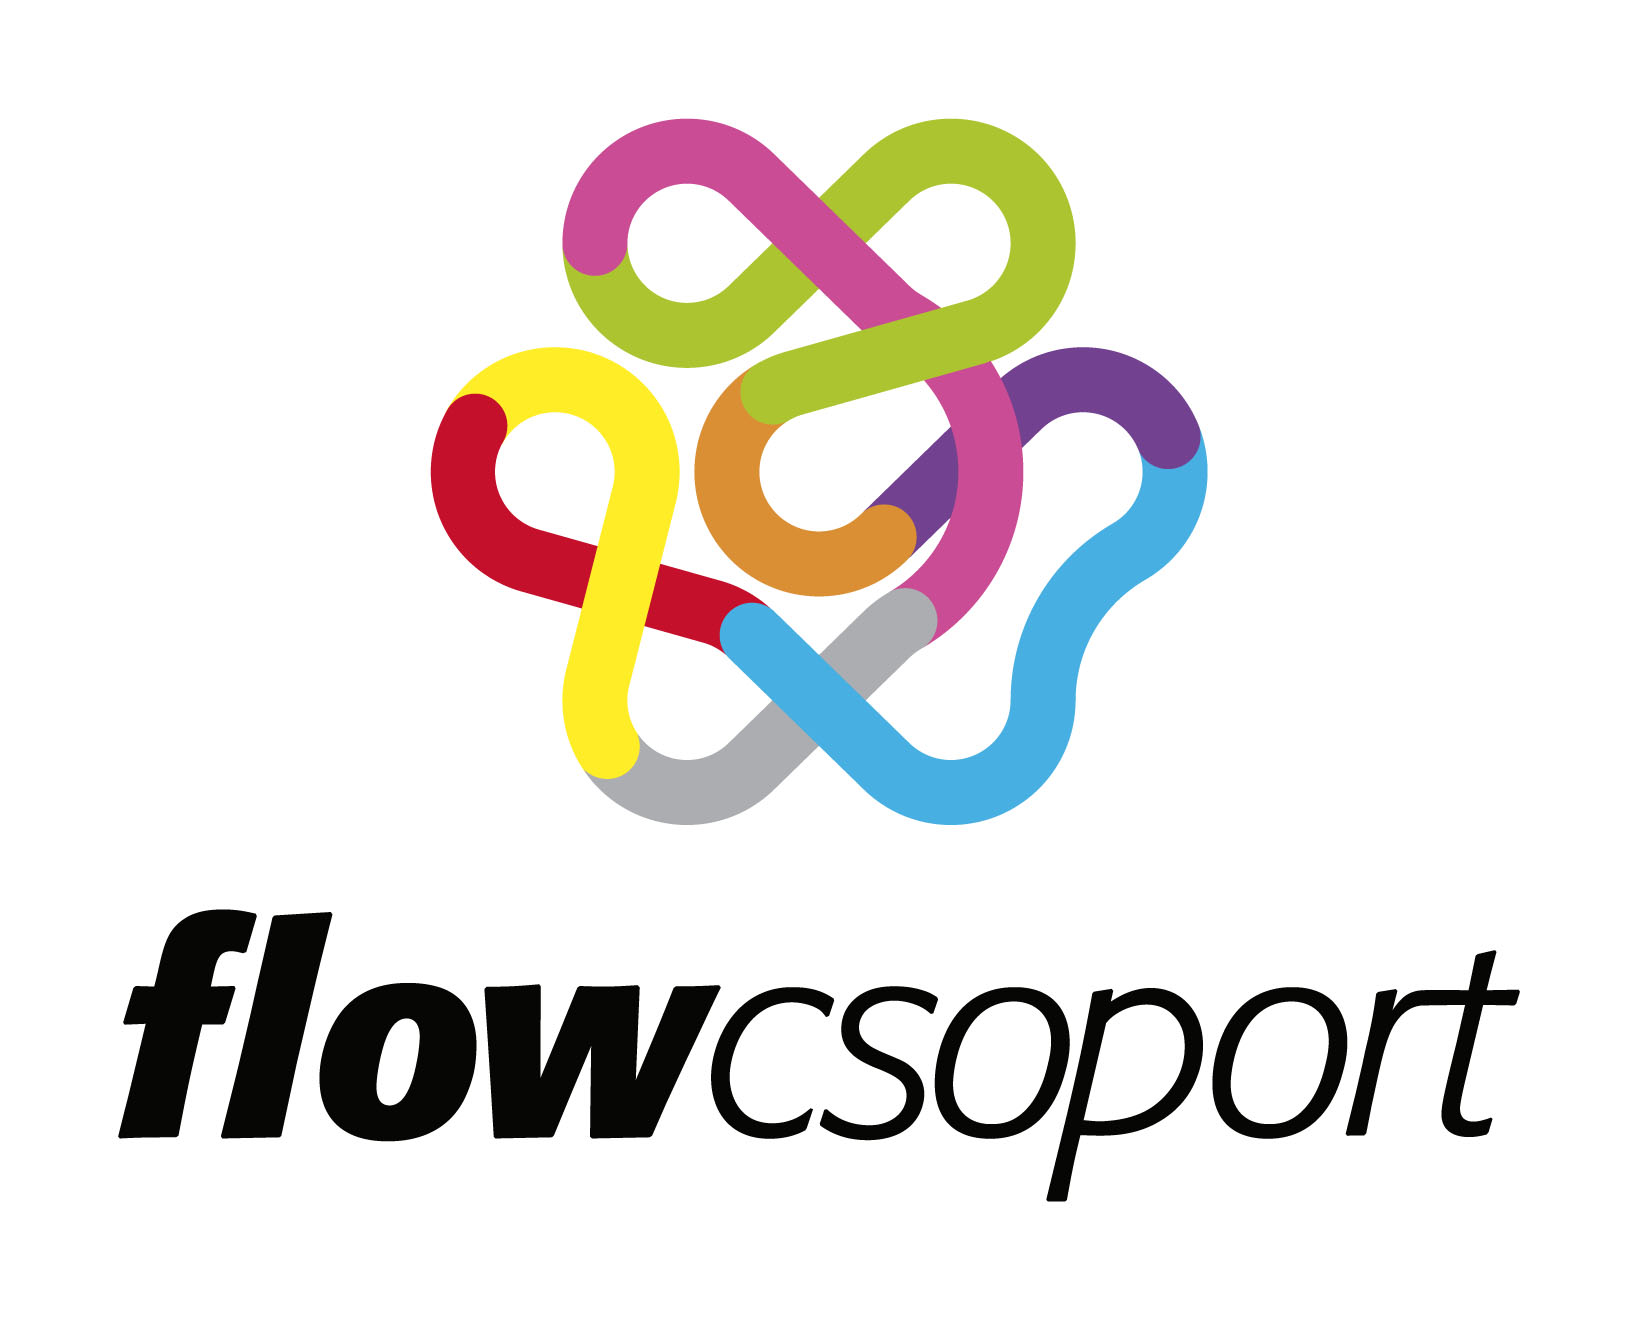 1flow_csoport_kozepre_zart copy.jpg